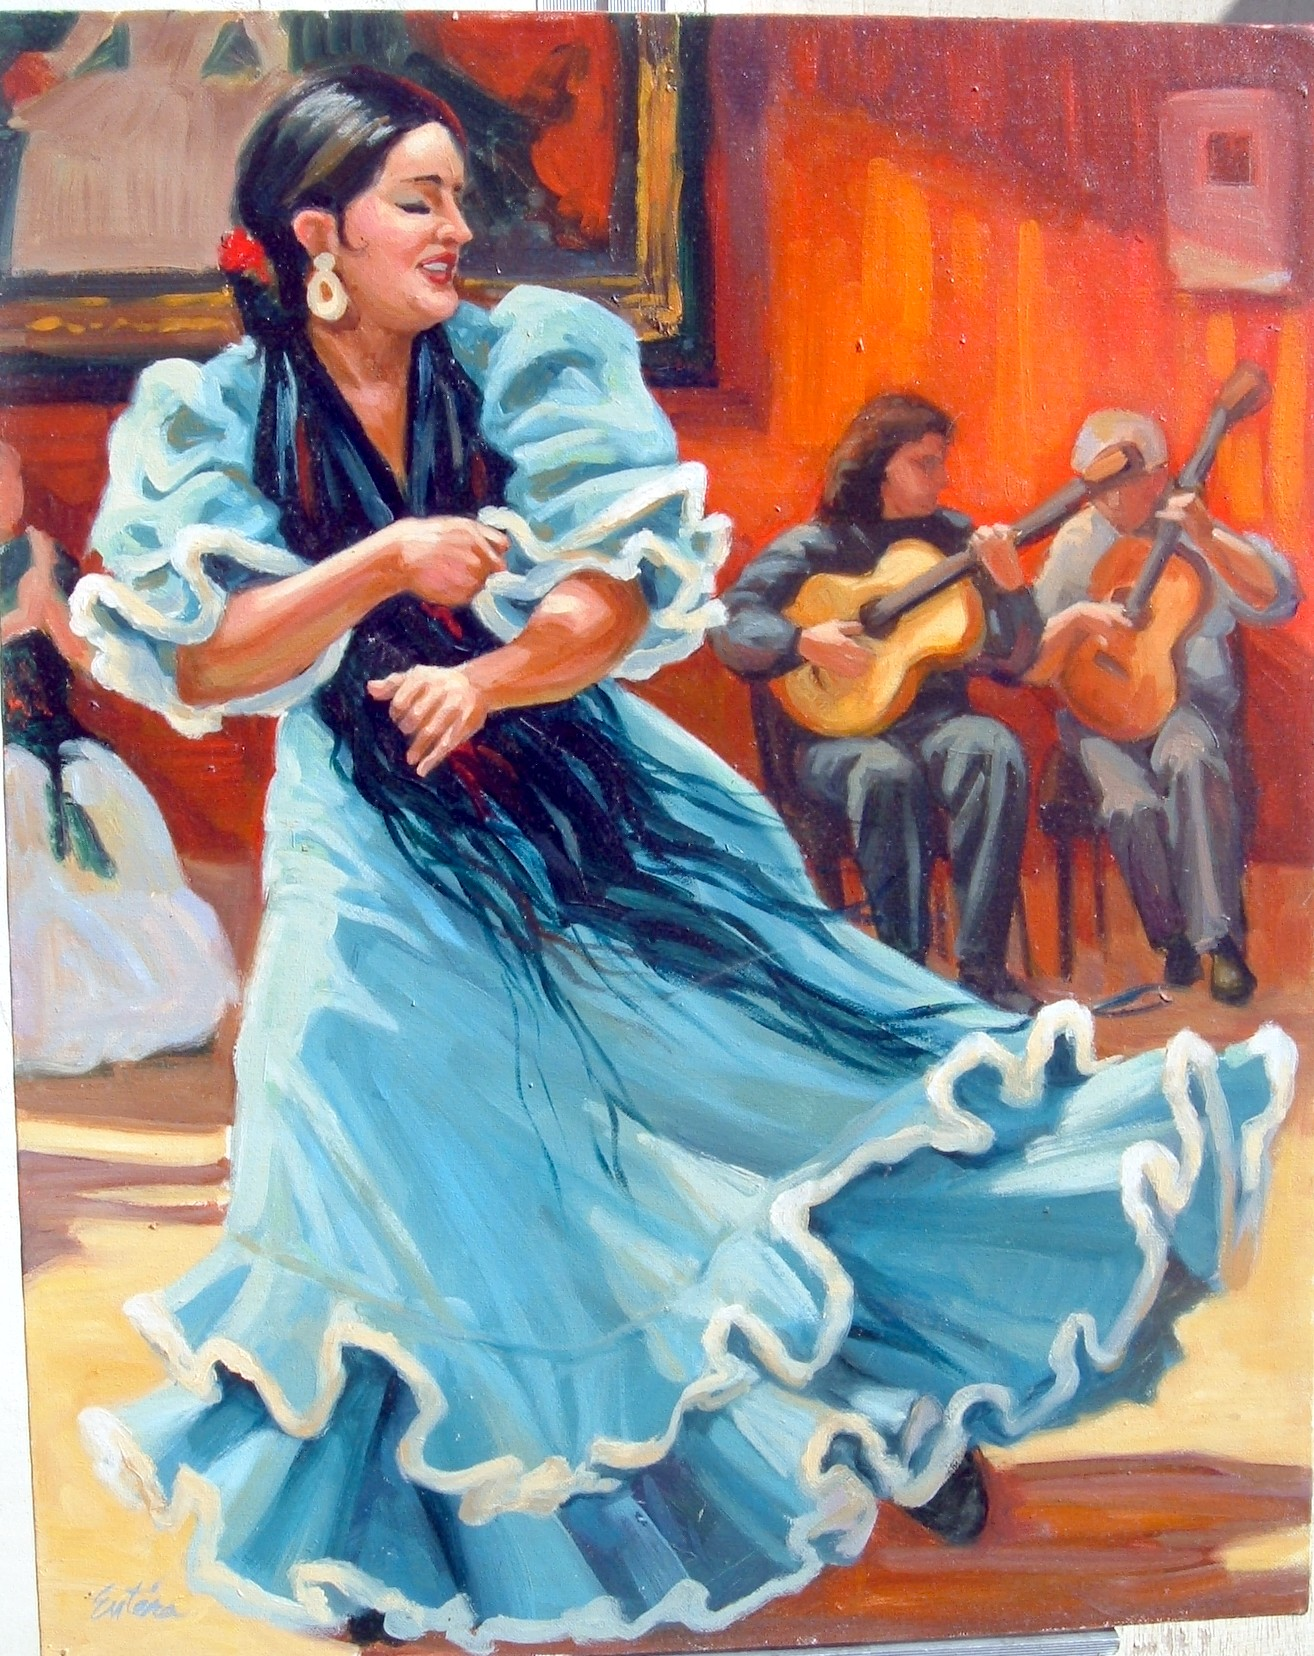 flamenco_passion.jpg